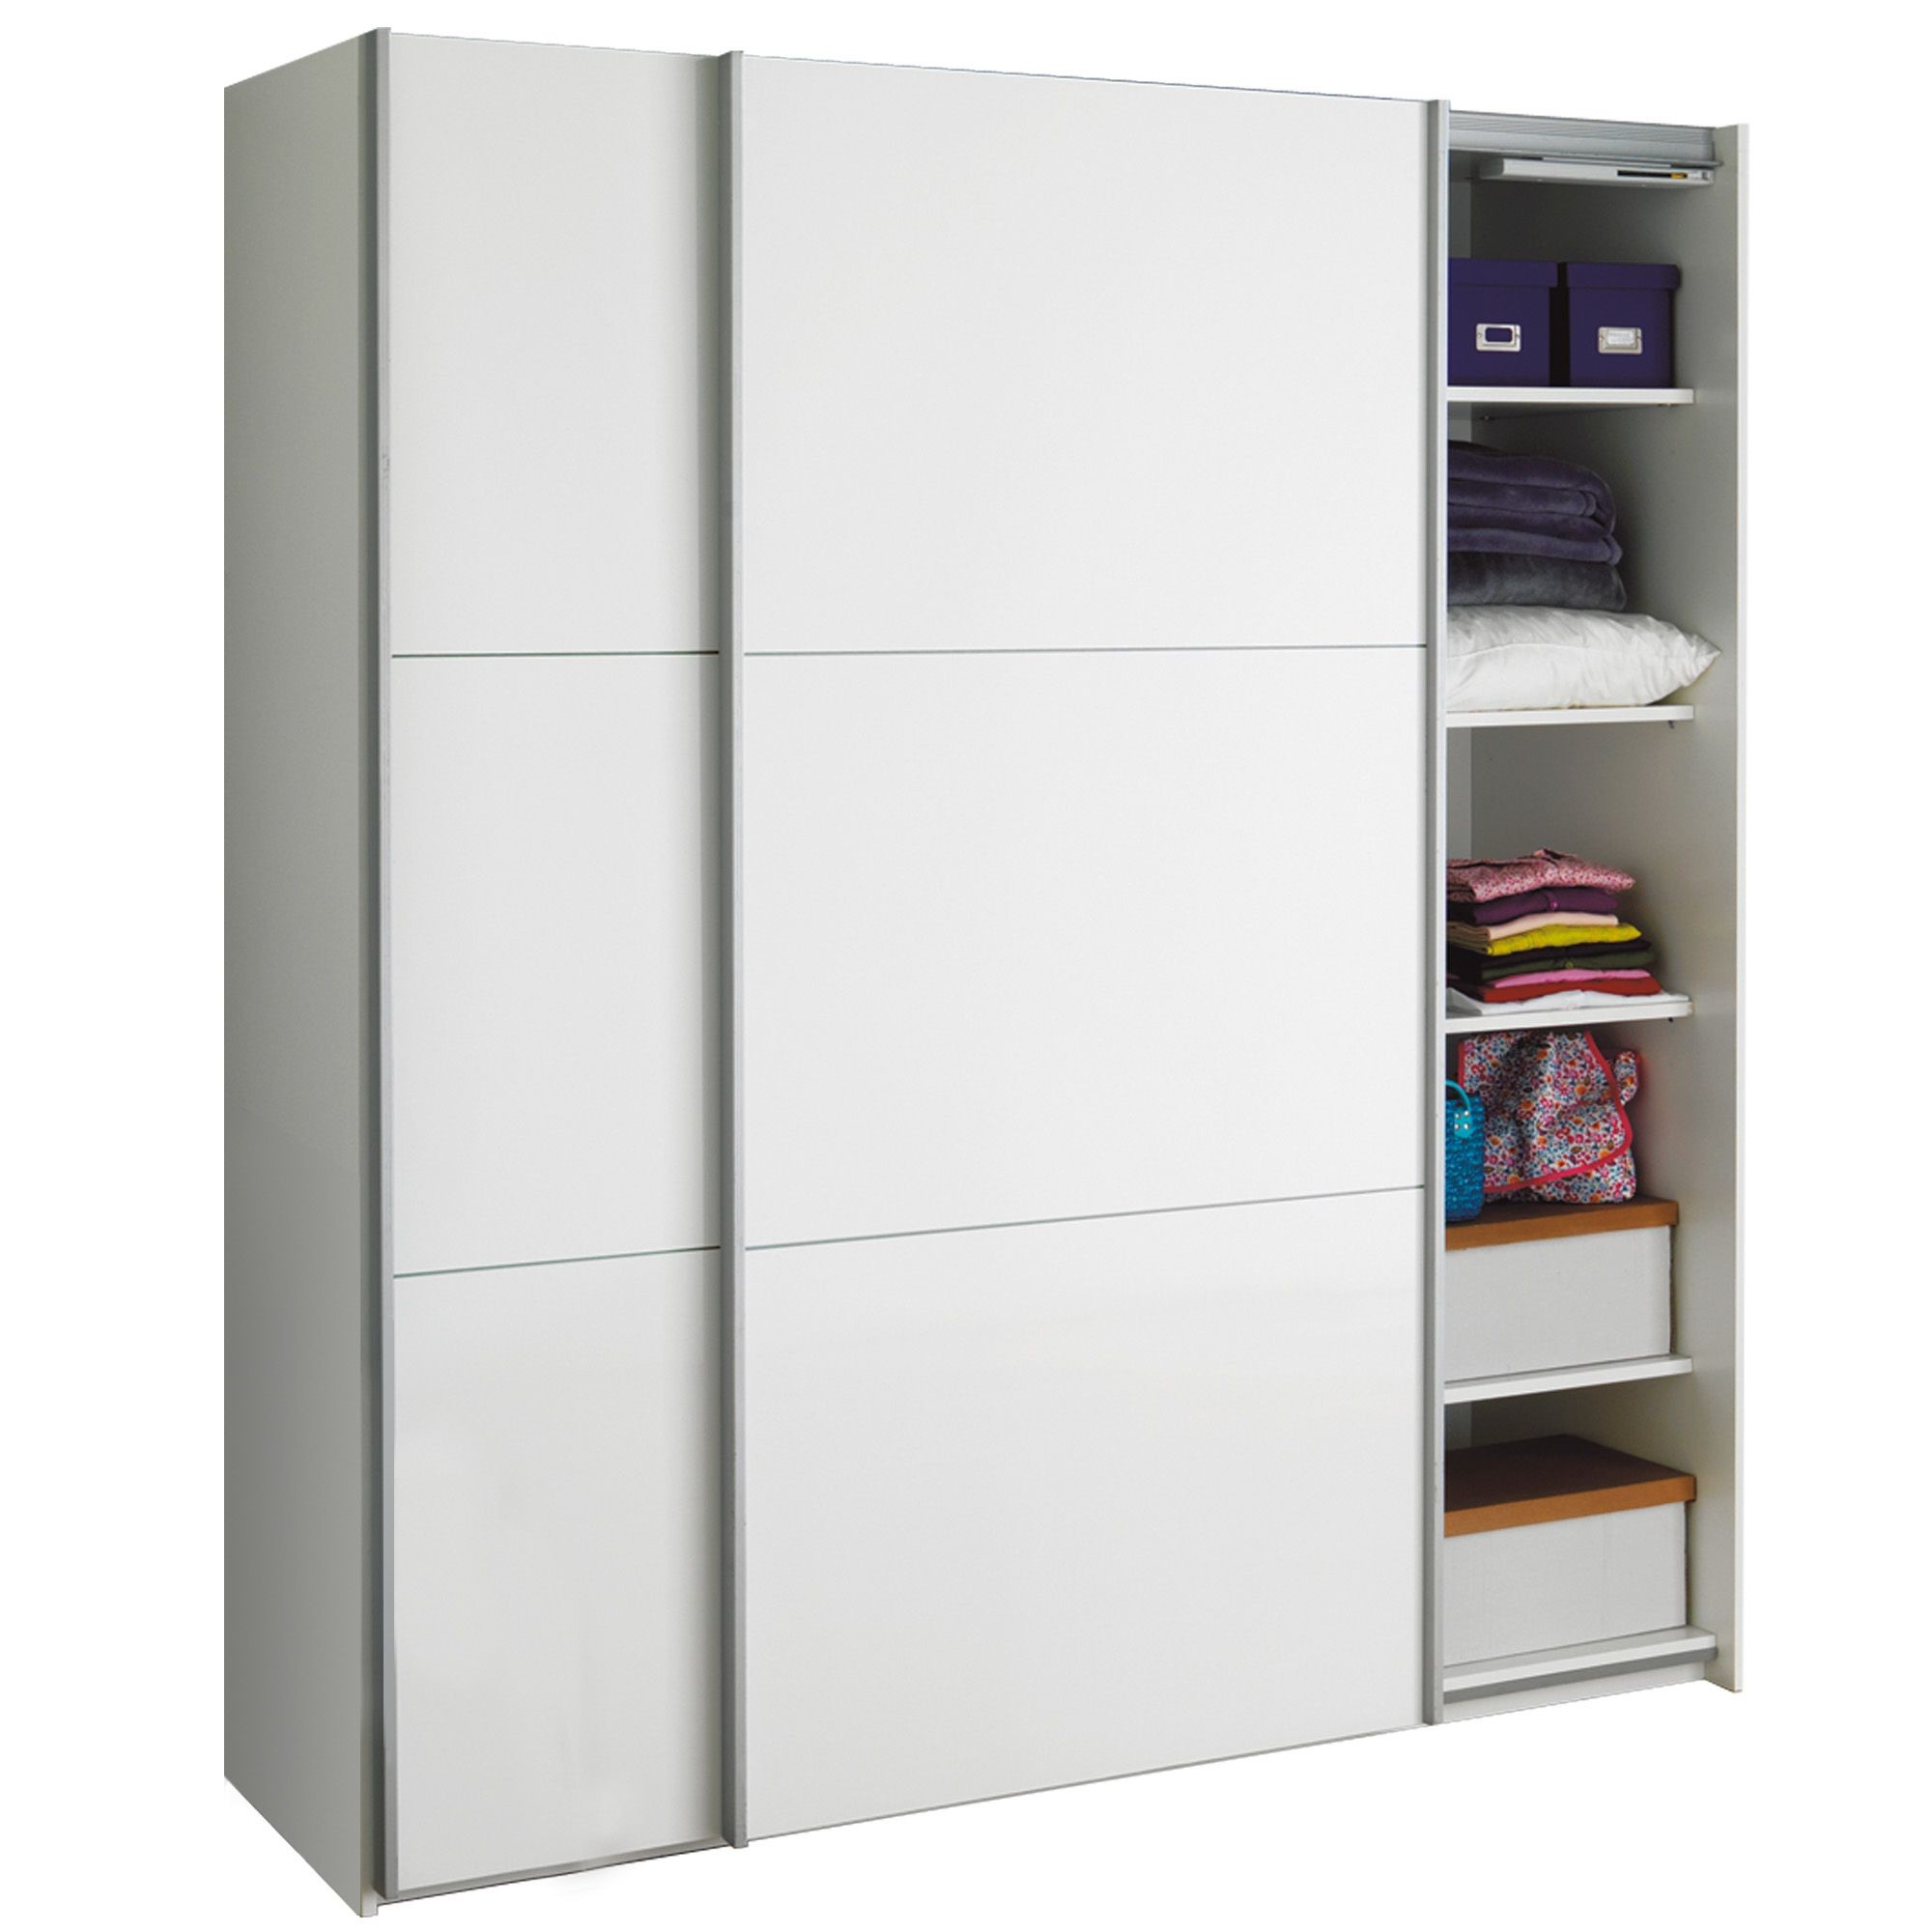 armoire porte coulissante ikea armoire ikea blanche. Black Bedroom Furniture Sets. Home Design Ideas